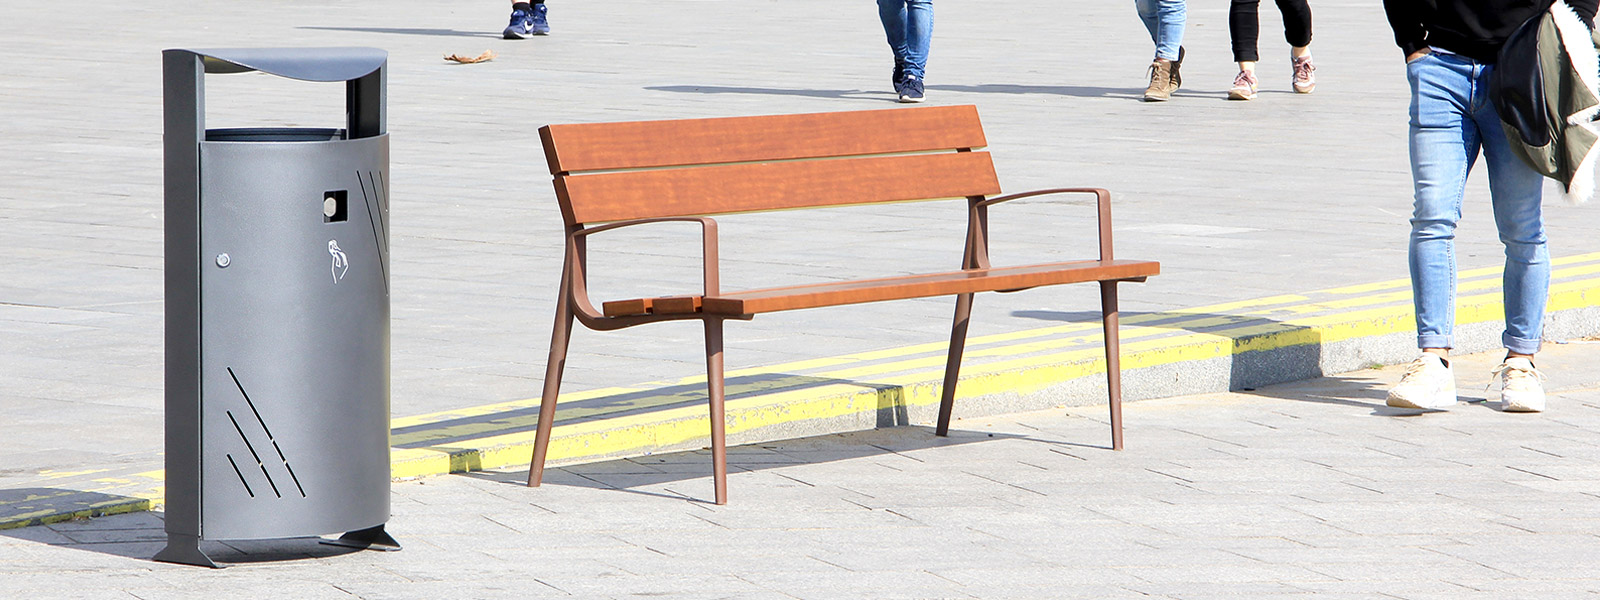 Site Furnishing , Benches , UB29 Oslo bench ,